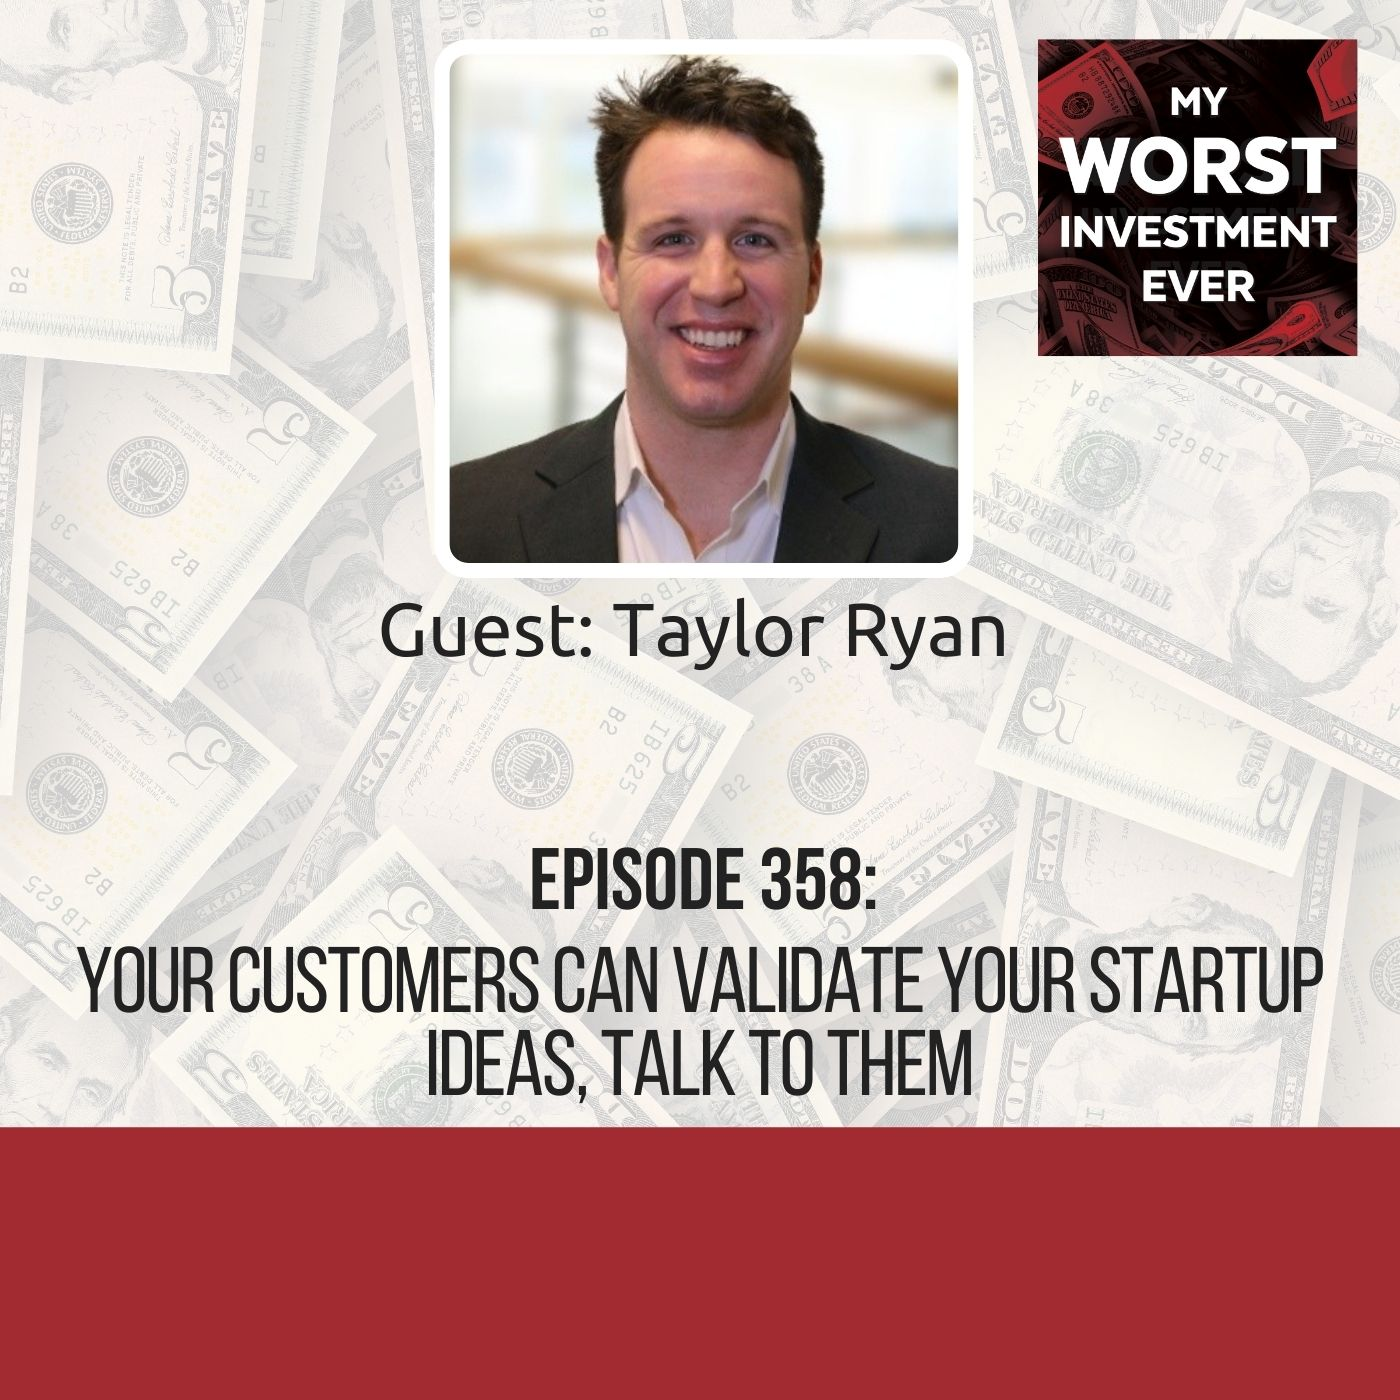 Taylor Ryan – Your Customers Can Validate Your Startup Ideas, Talk to Them